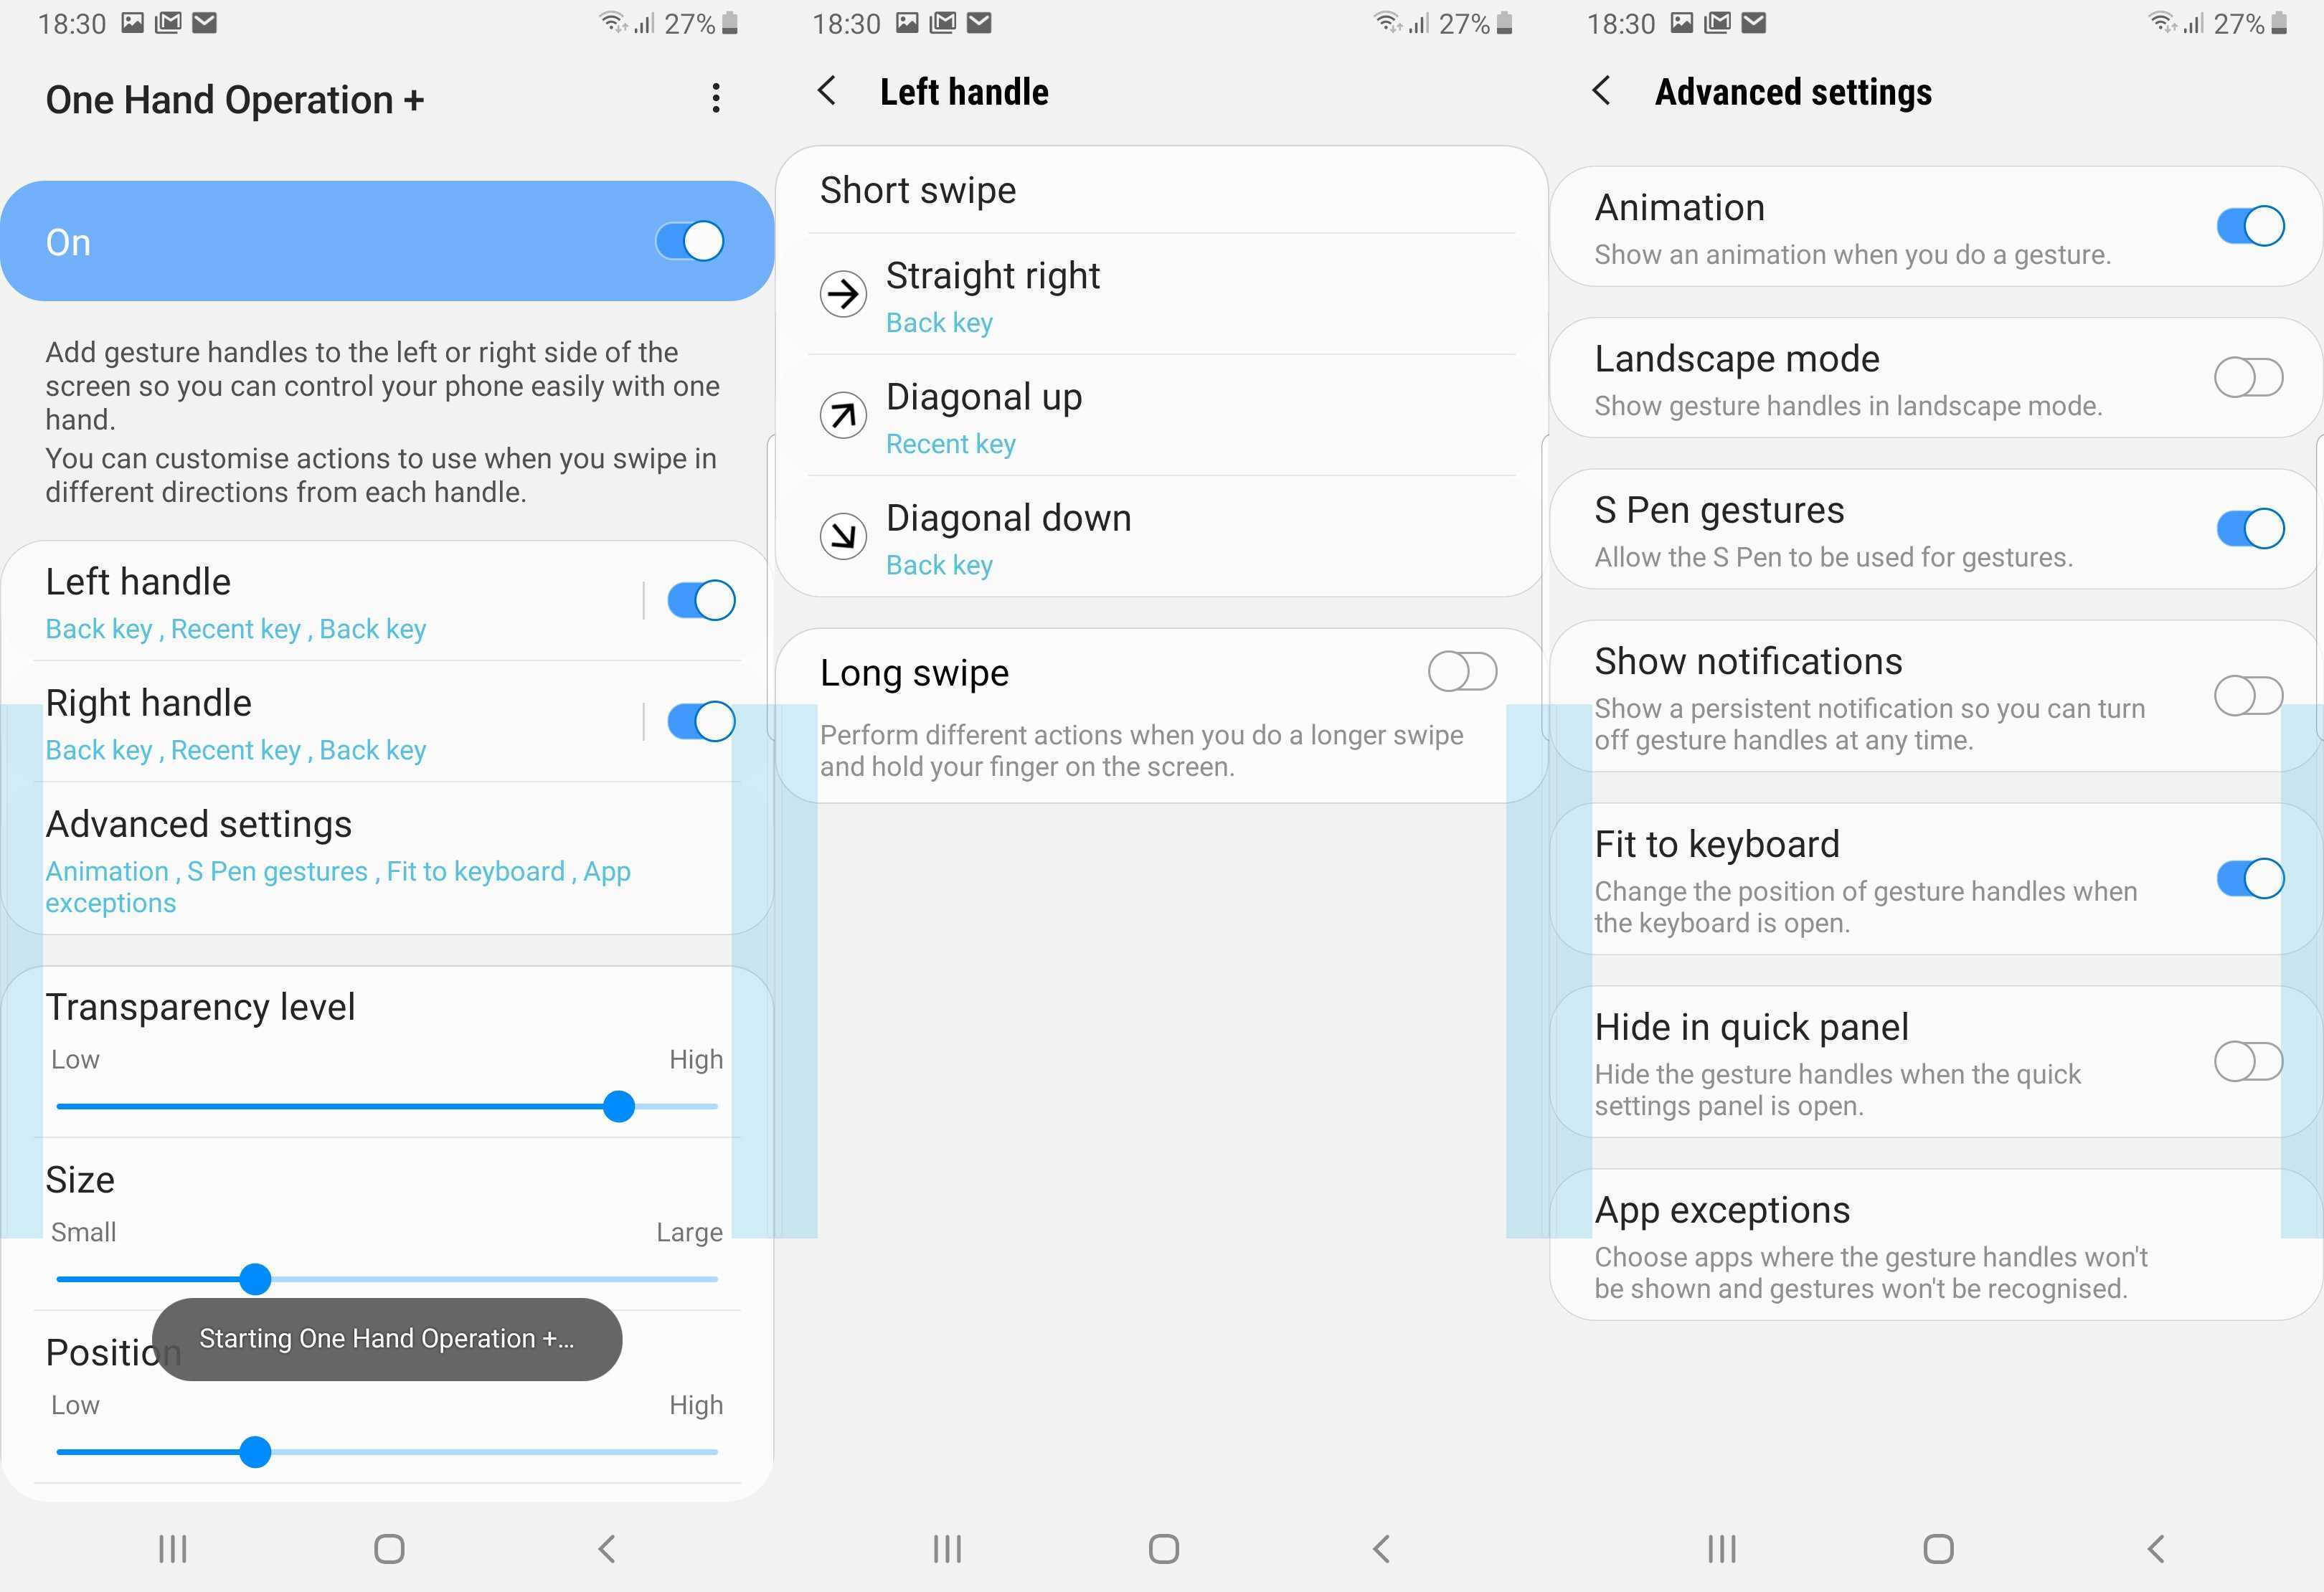 Samsung releases One Hand Operation+ Good Lock feature on